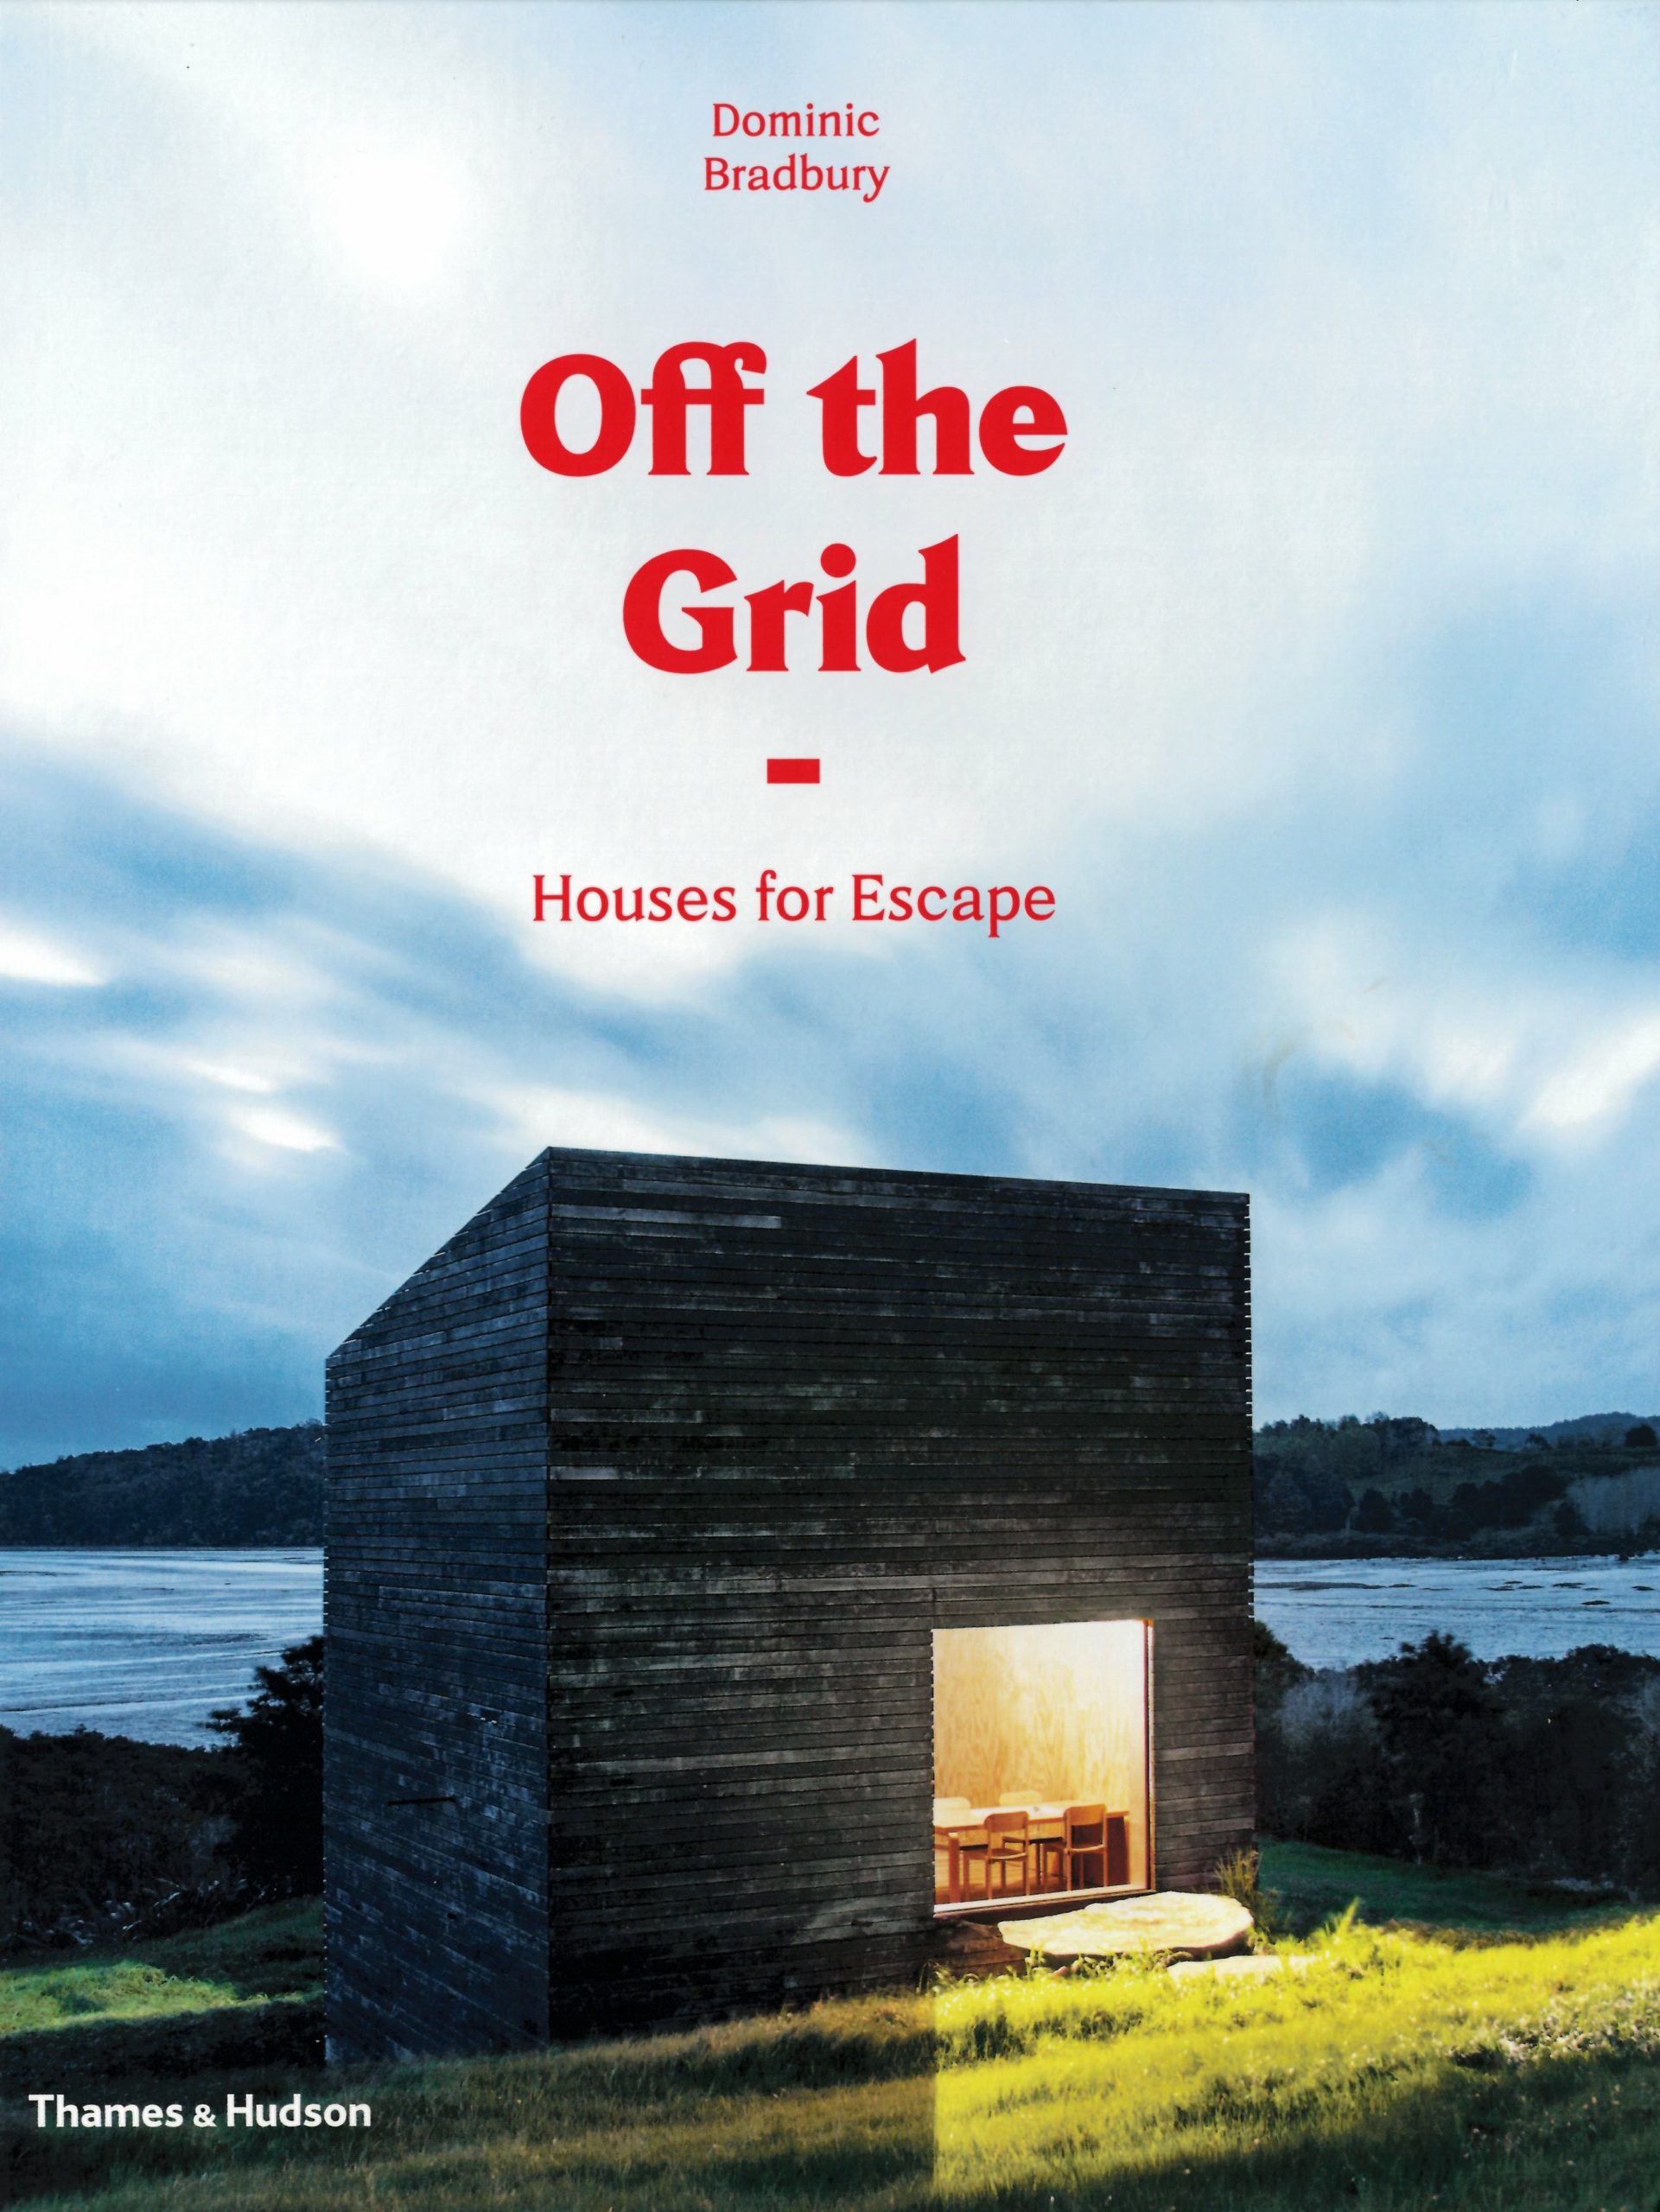 Off the Grid book by Thames & Hudson featuring Renée del Gaudio Architecture.